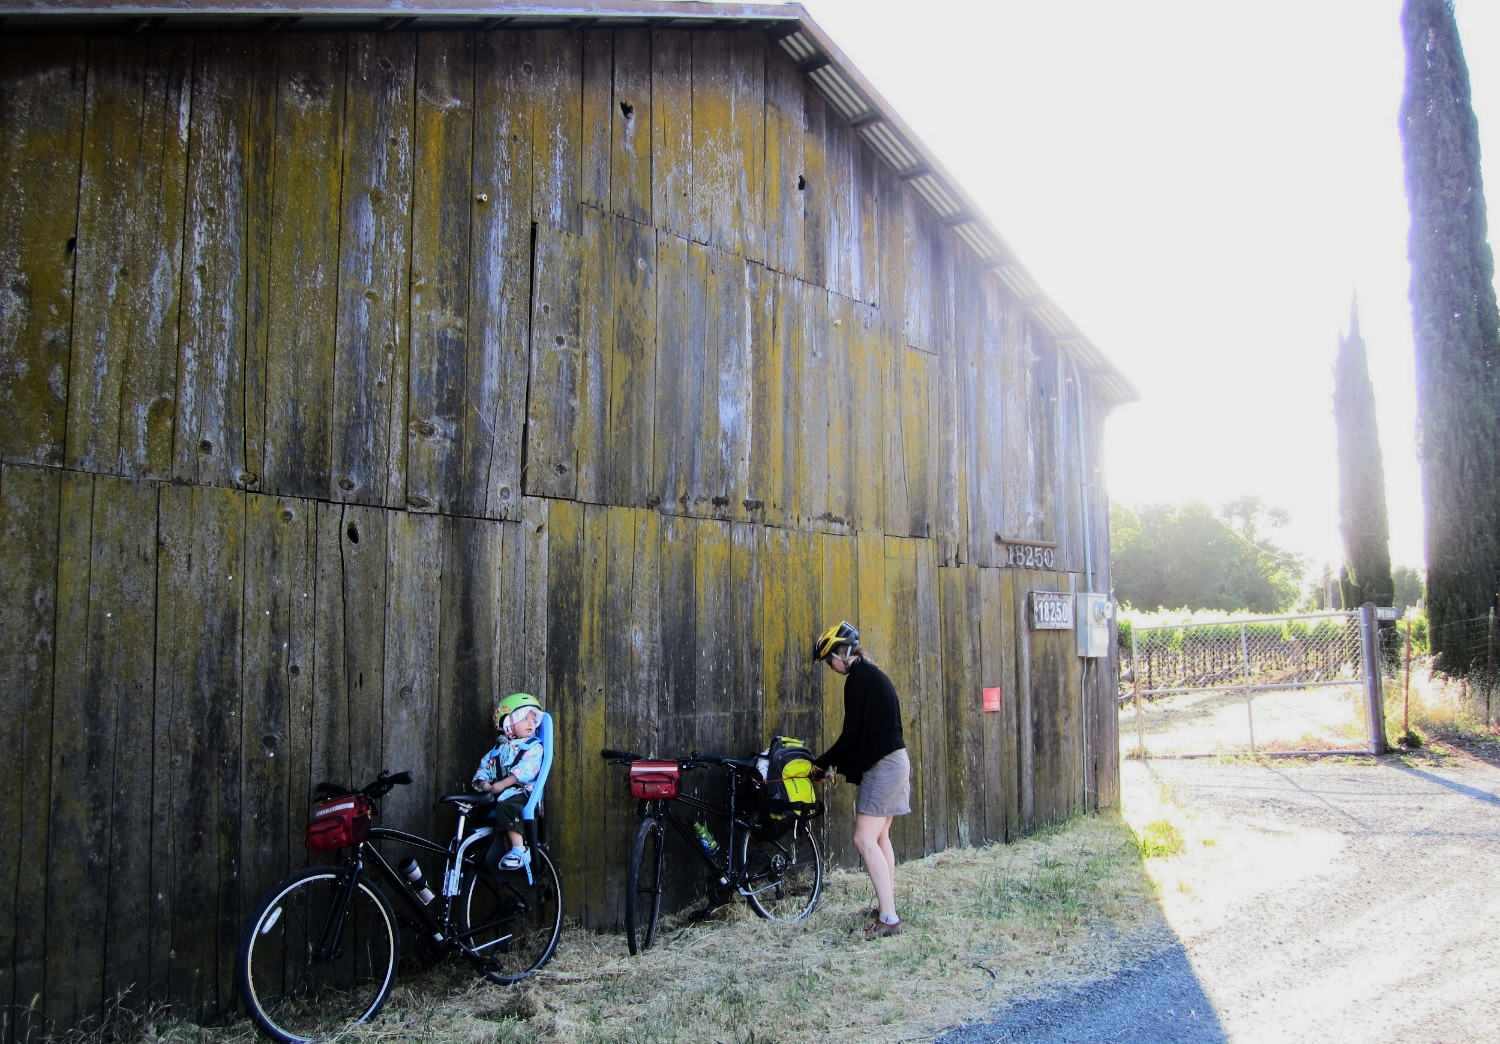 Rest stop on the Bikabout founder's ride through Sonoma County.